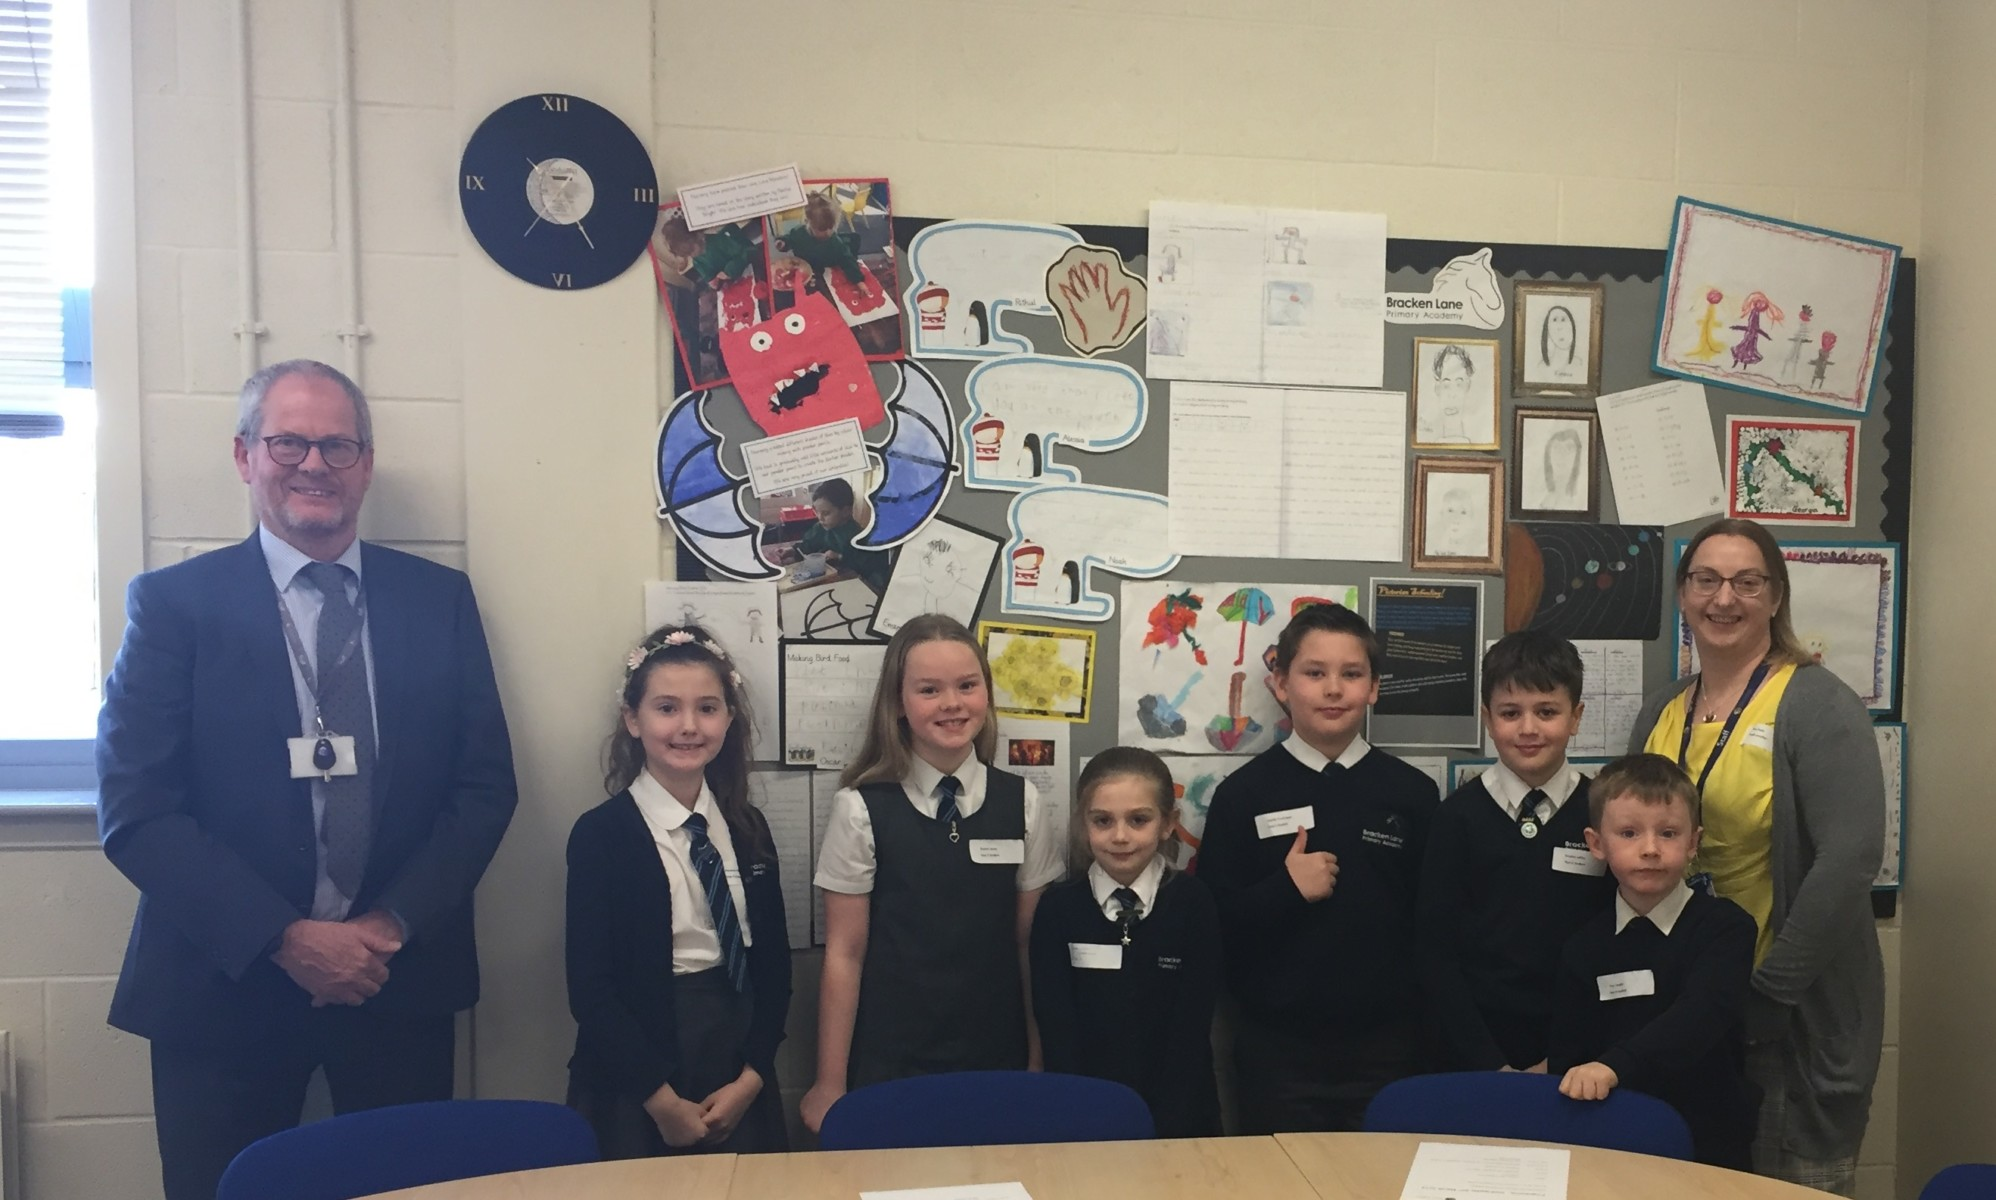 CEO welcomes visit from Bracken Lane Primary pupils